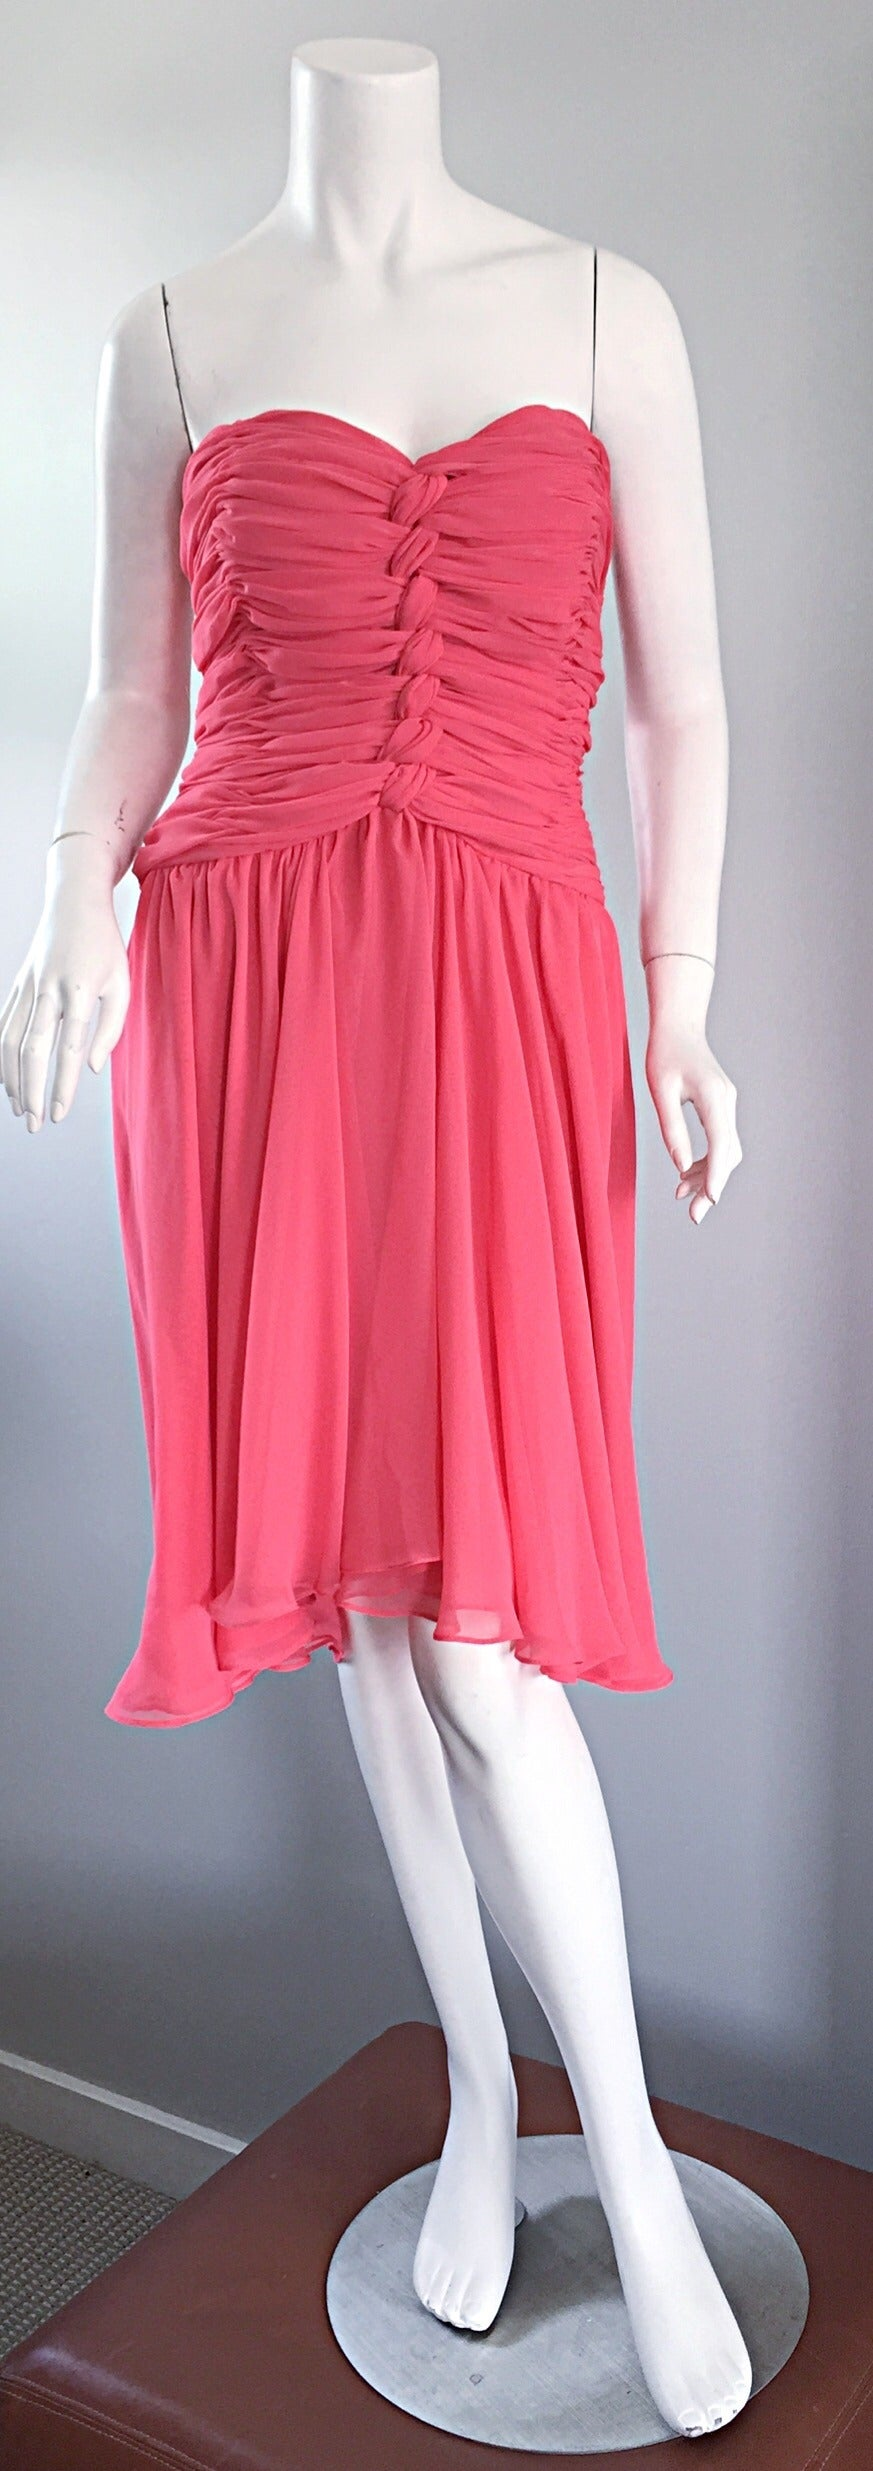 Beautiful vintage Victor Costa coral/pink strapless dress! Light and flowy, this dress does wonders for the body! Ruching and knotting at bodice (on front and back), with layers of vibrant coral on the skirt. Looks great when walking, or on the